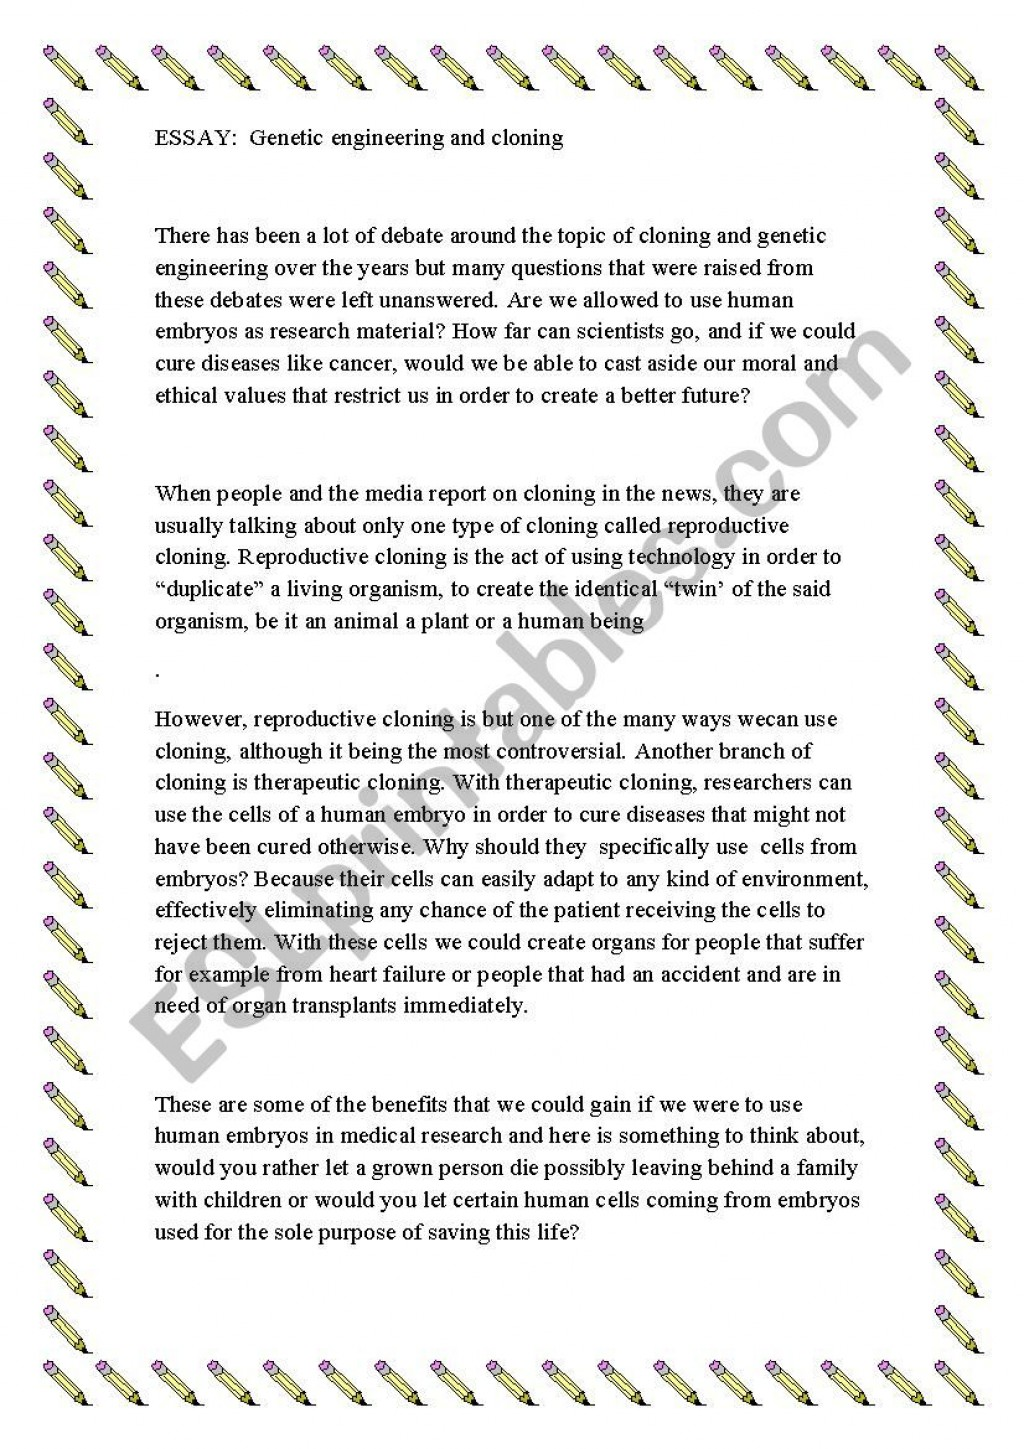 004 Cloning Essay Example 807139 1 Unique Prompts Introduction Large